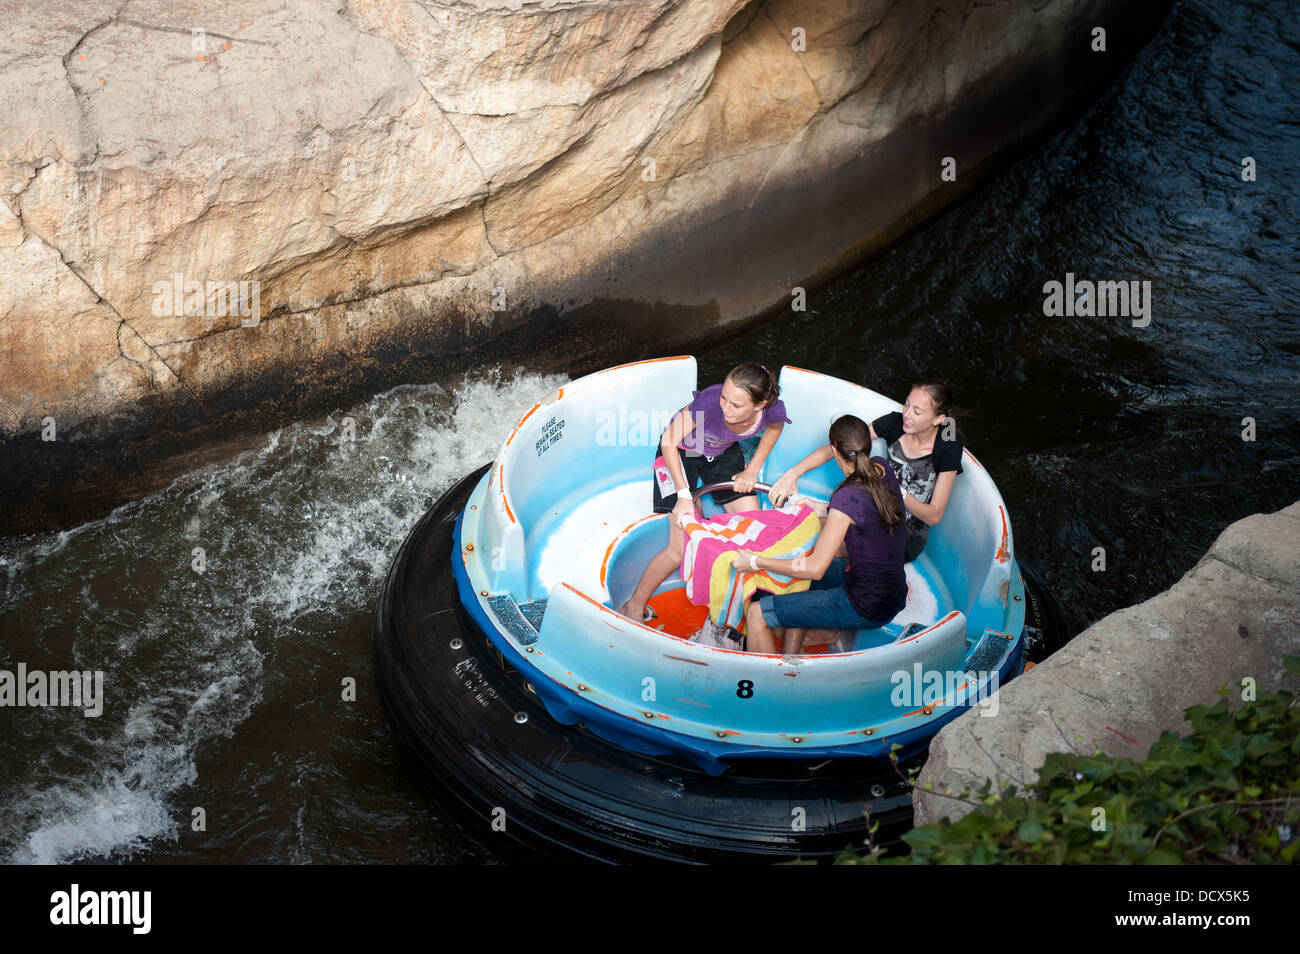 Raging River Rapids fun ride, Gold Reef City, Johannesburg, South Africa - Stock Image